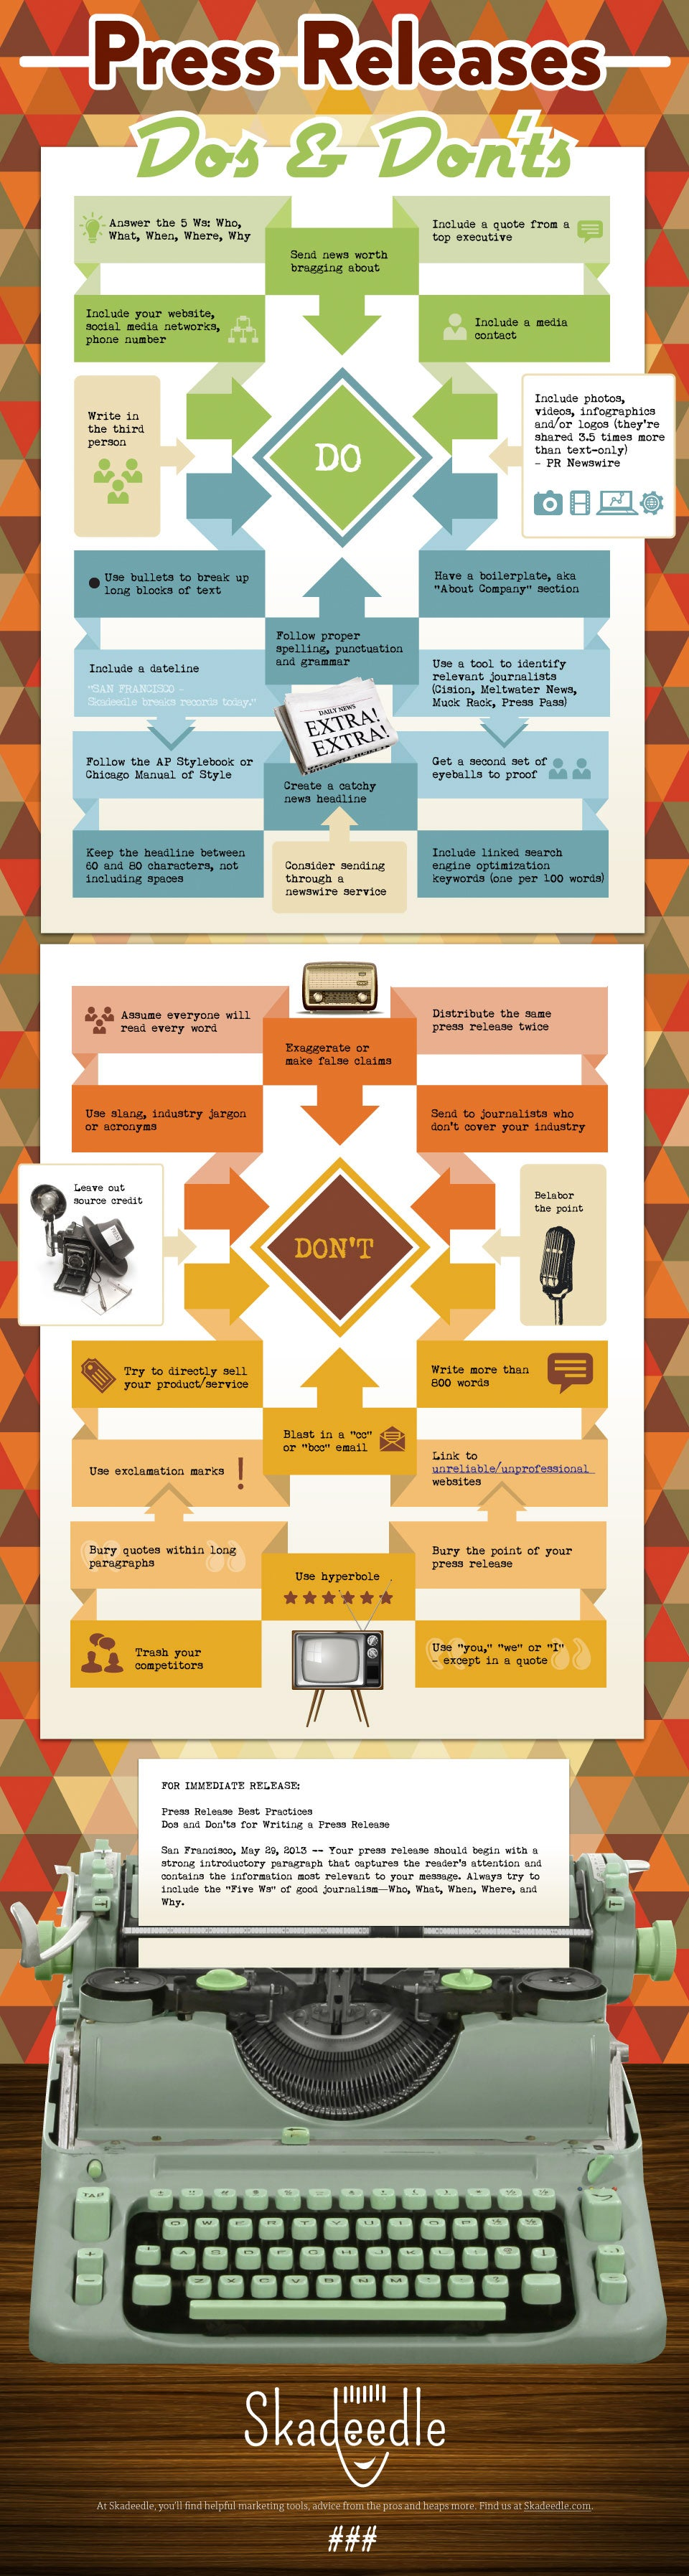 The Do's and Dont's of Press Releases (Infographic)